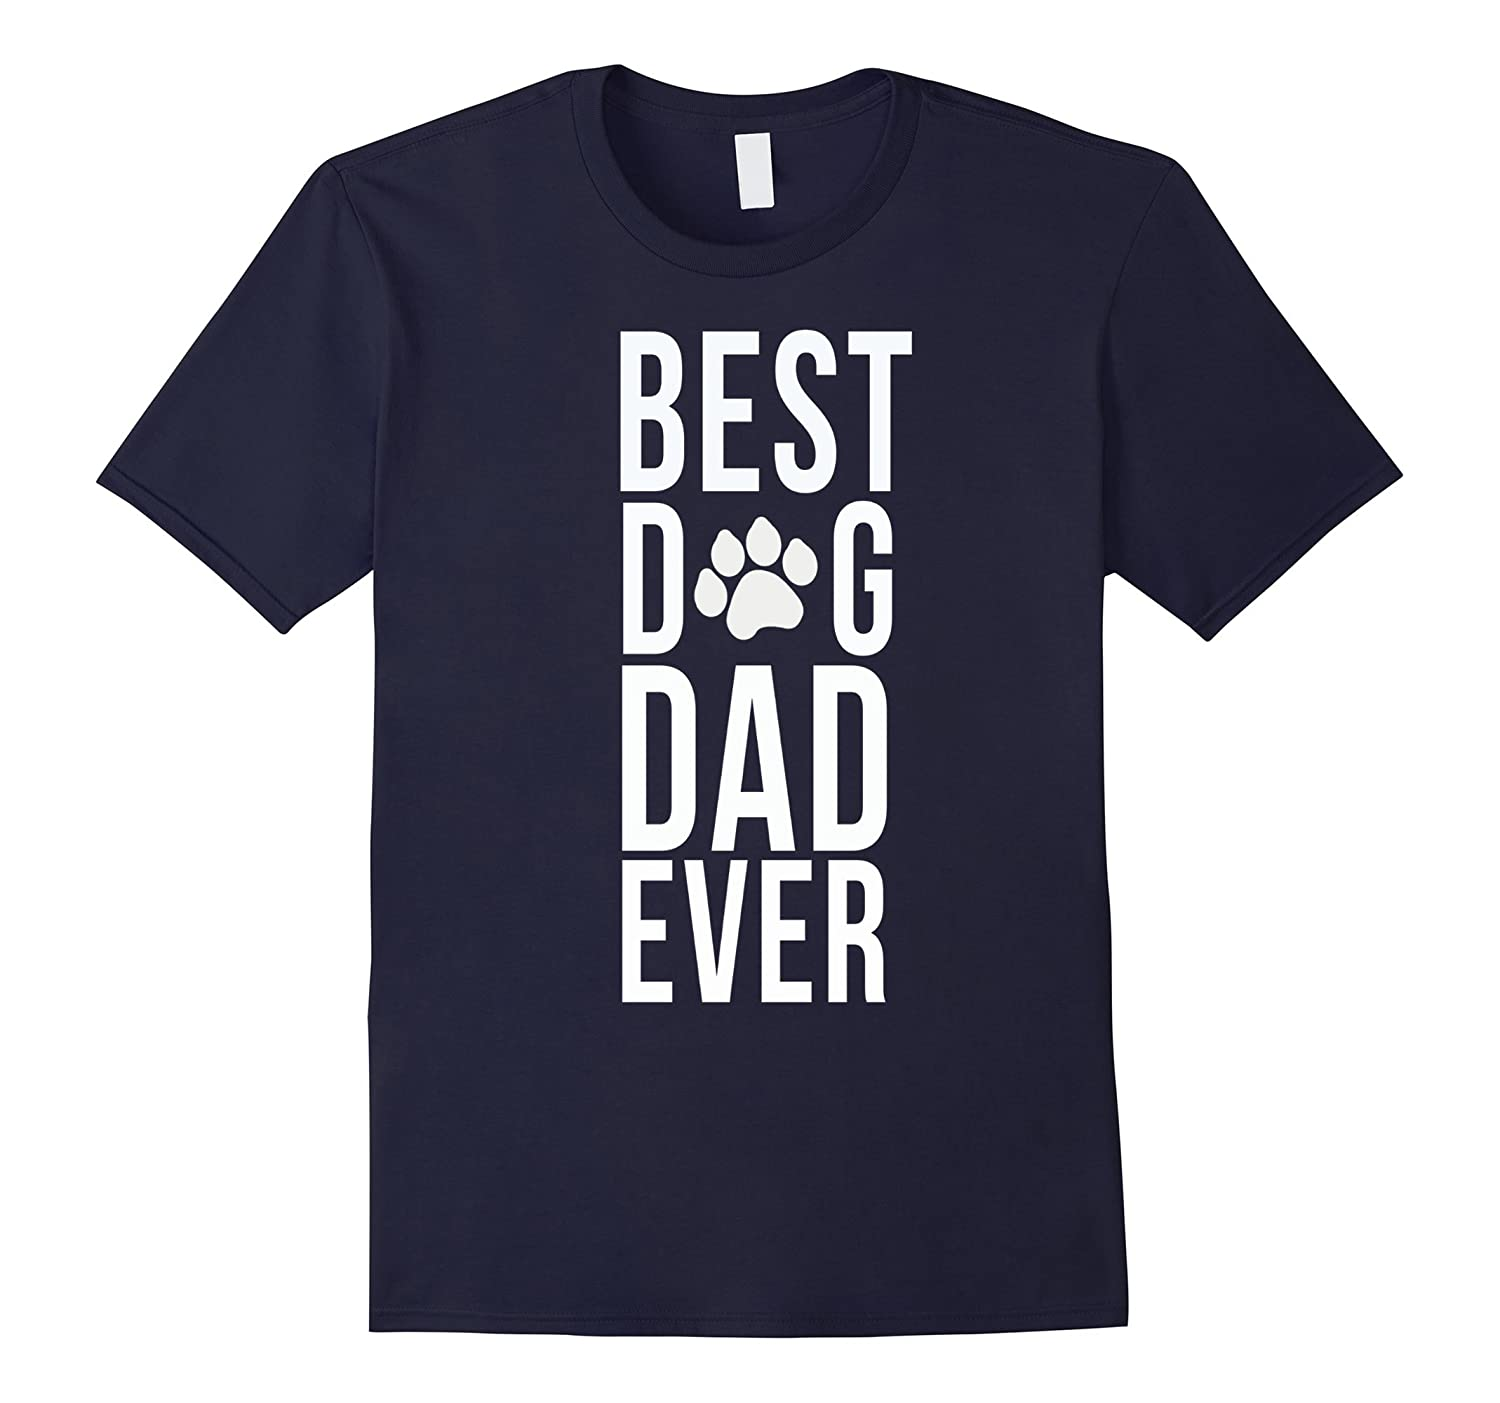 Mens Best Dog Dad Ever T-shirt Dog Lover Dog Person T-shirt-RT